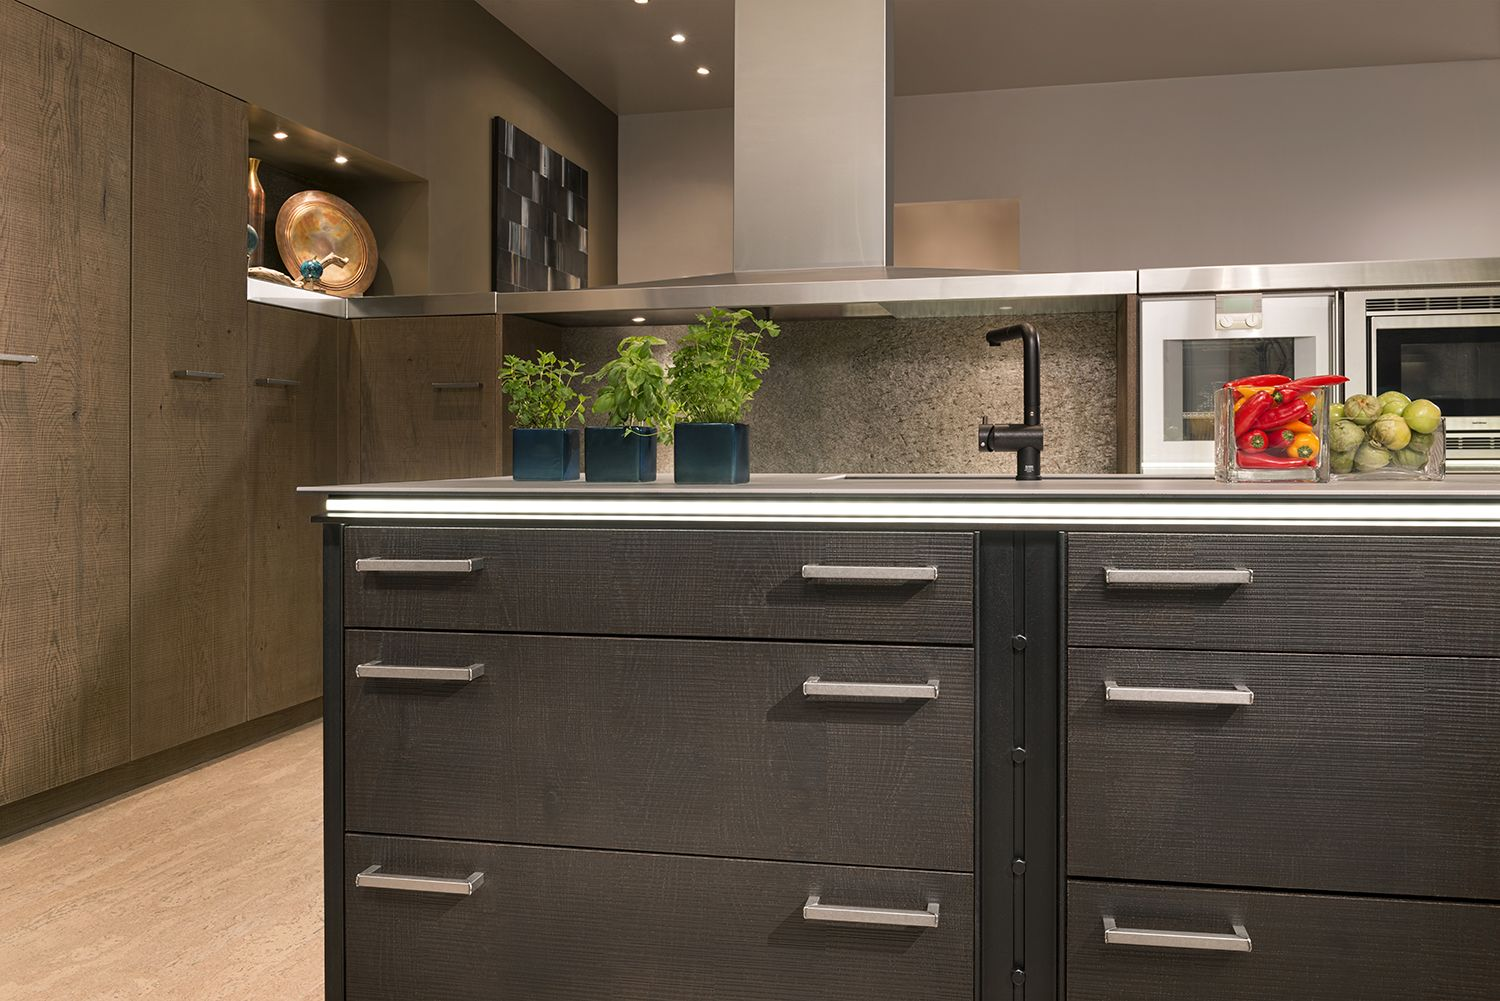 Universal Elements Kitchen By Woodmode Shown In Oolong And Foundry Finishes On Contemporary Kitchen Cabinets Contemporary Kitchen Contemporary Kitchen Design